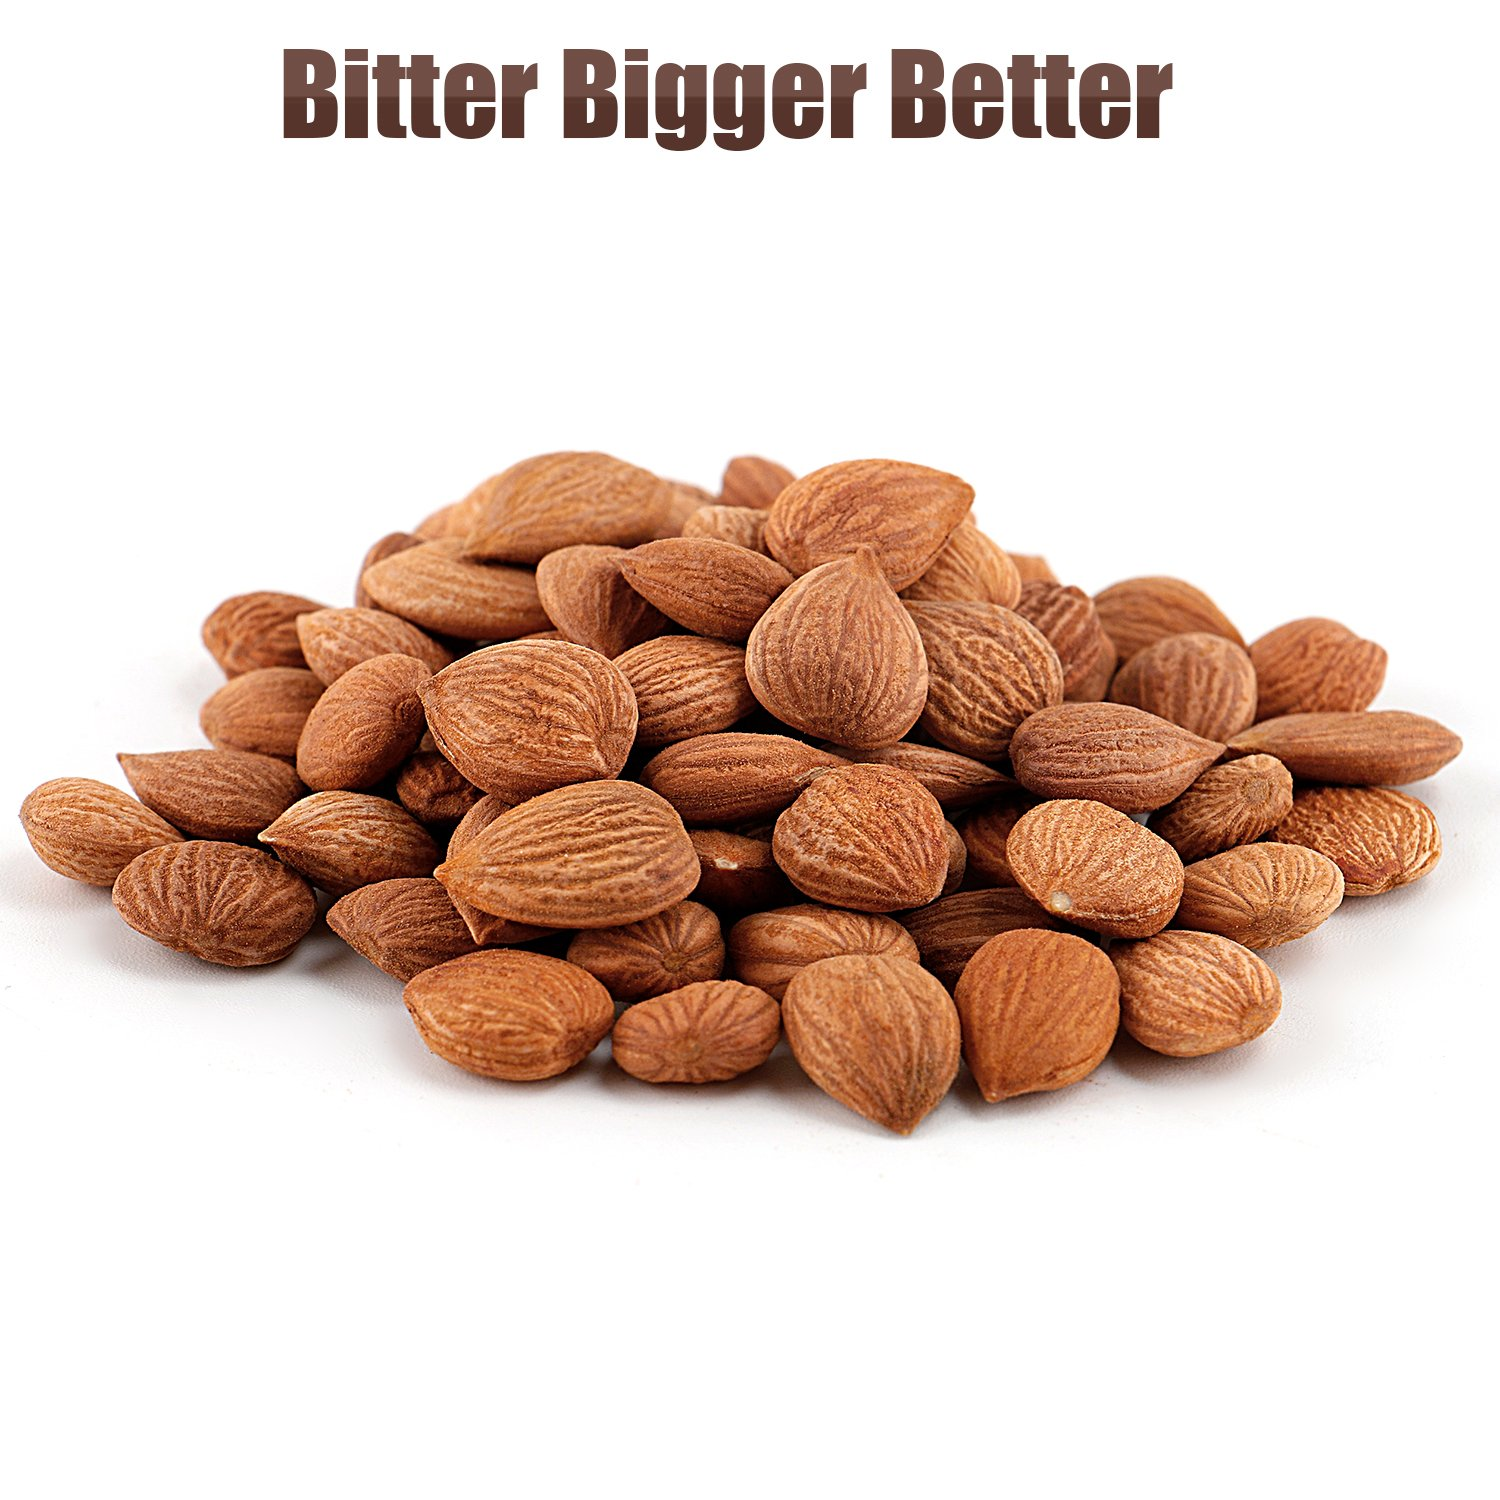 Organic Bitter Apricot Kernels(1LB) 16oz, Natural Raw USDA Organic Bitter Apricot Seeds, Vegan, Non-GMO, Gluten Free, Great source of Vitamin B17 and B15 by Mighty Apricot (Image #2)